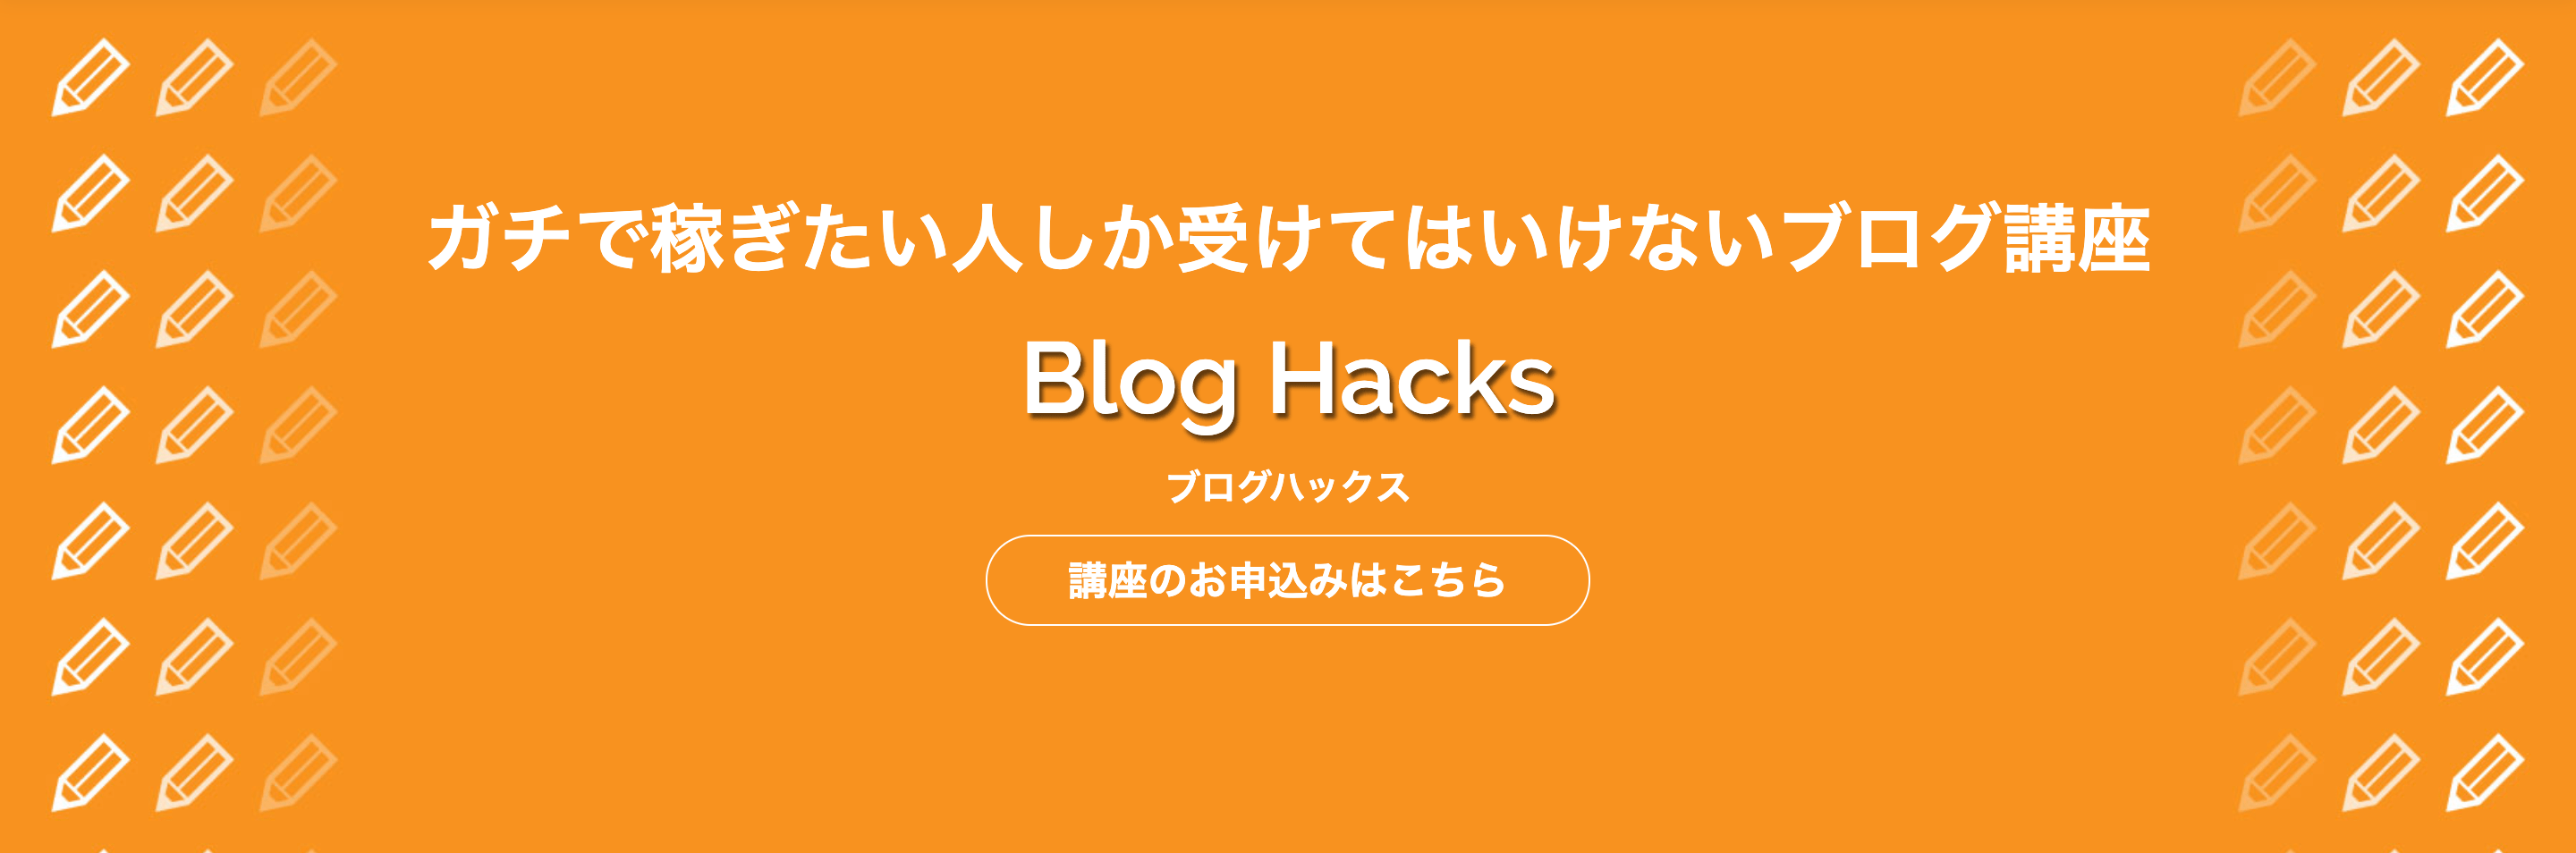 BlogHacks